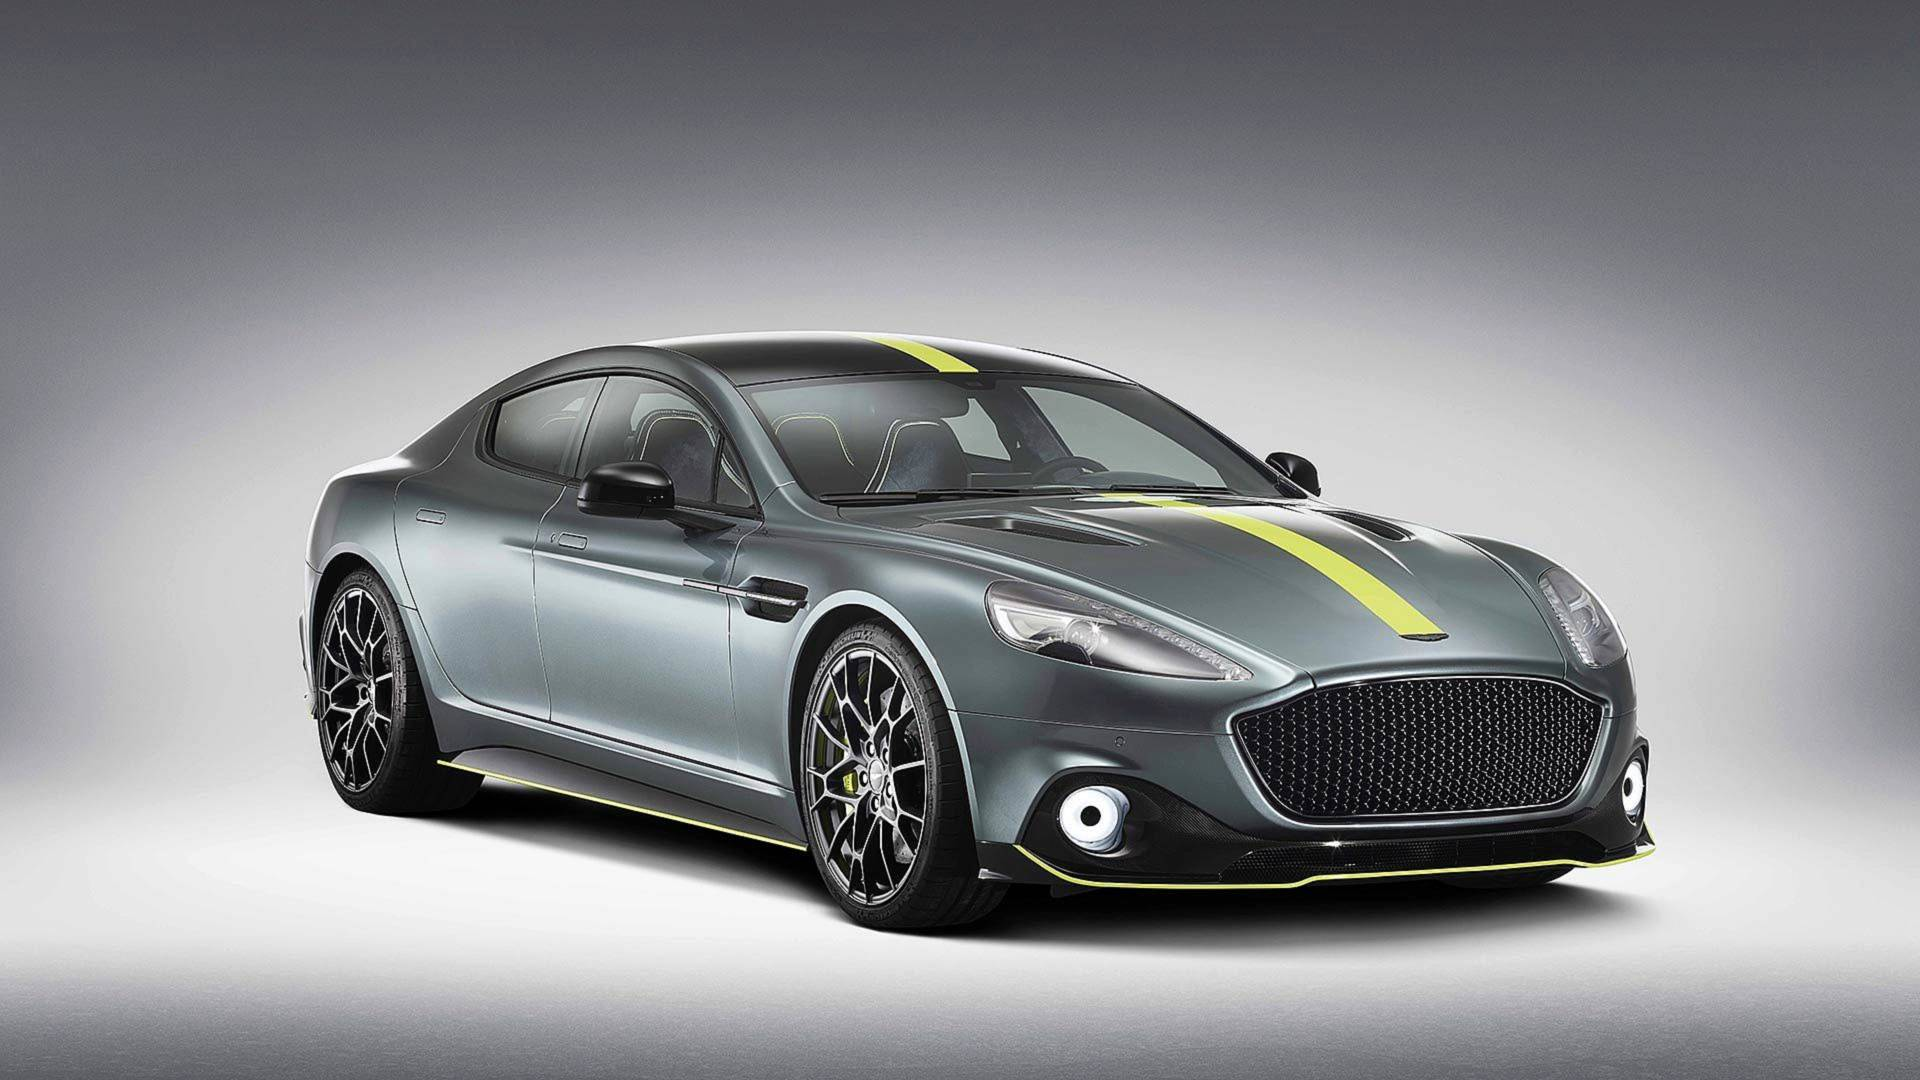 Perhaps the main advantage of the top-of-the-line Aston Martin Rapide AMR lies hidden under the hood